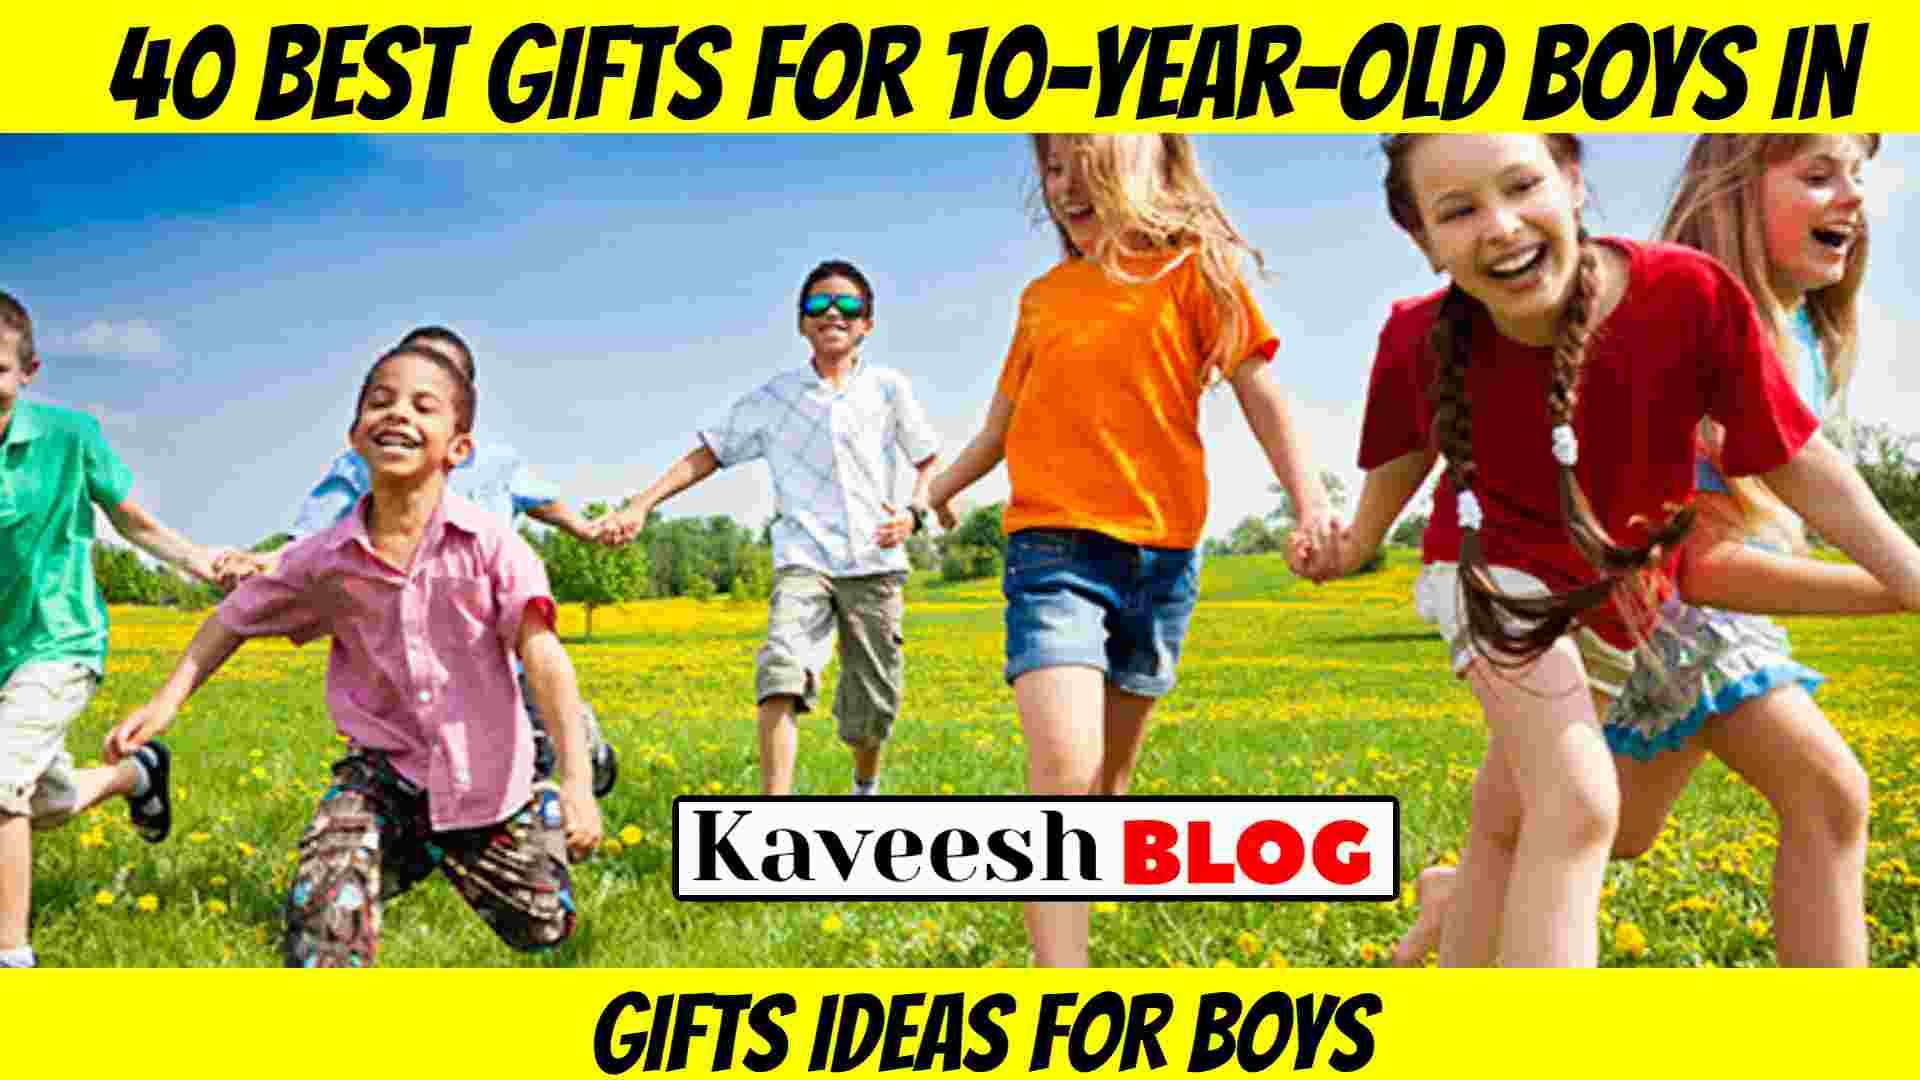 40 Best Gifts For 10-year-old Boys In (2020) Gifts Ideas For Boys 2